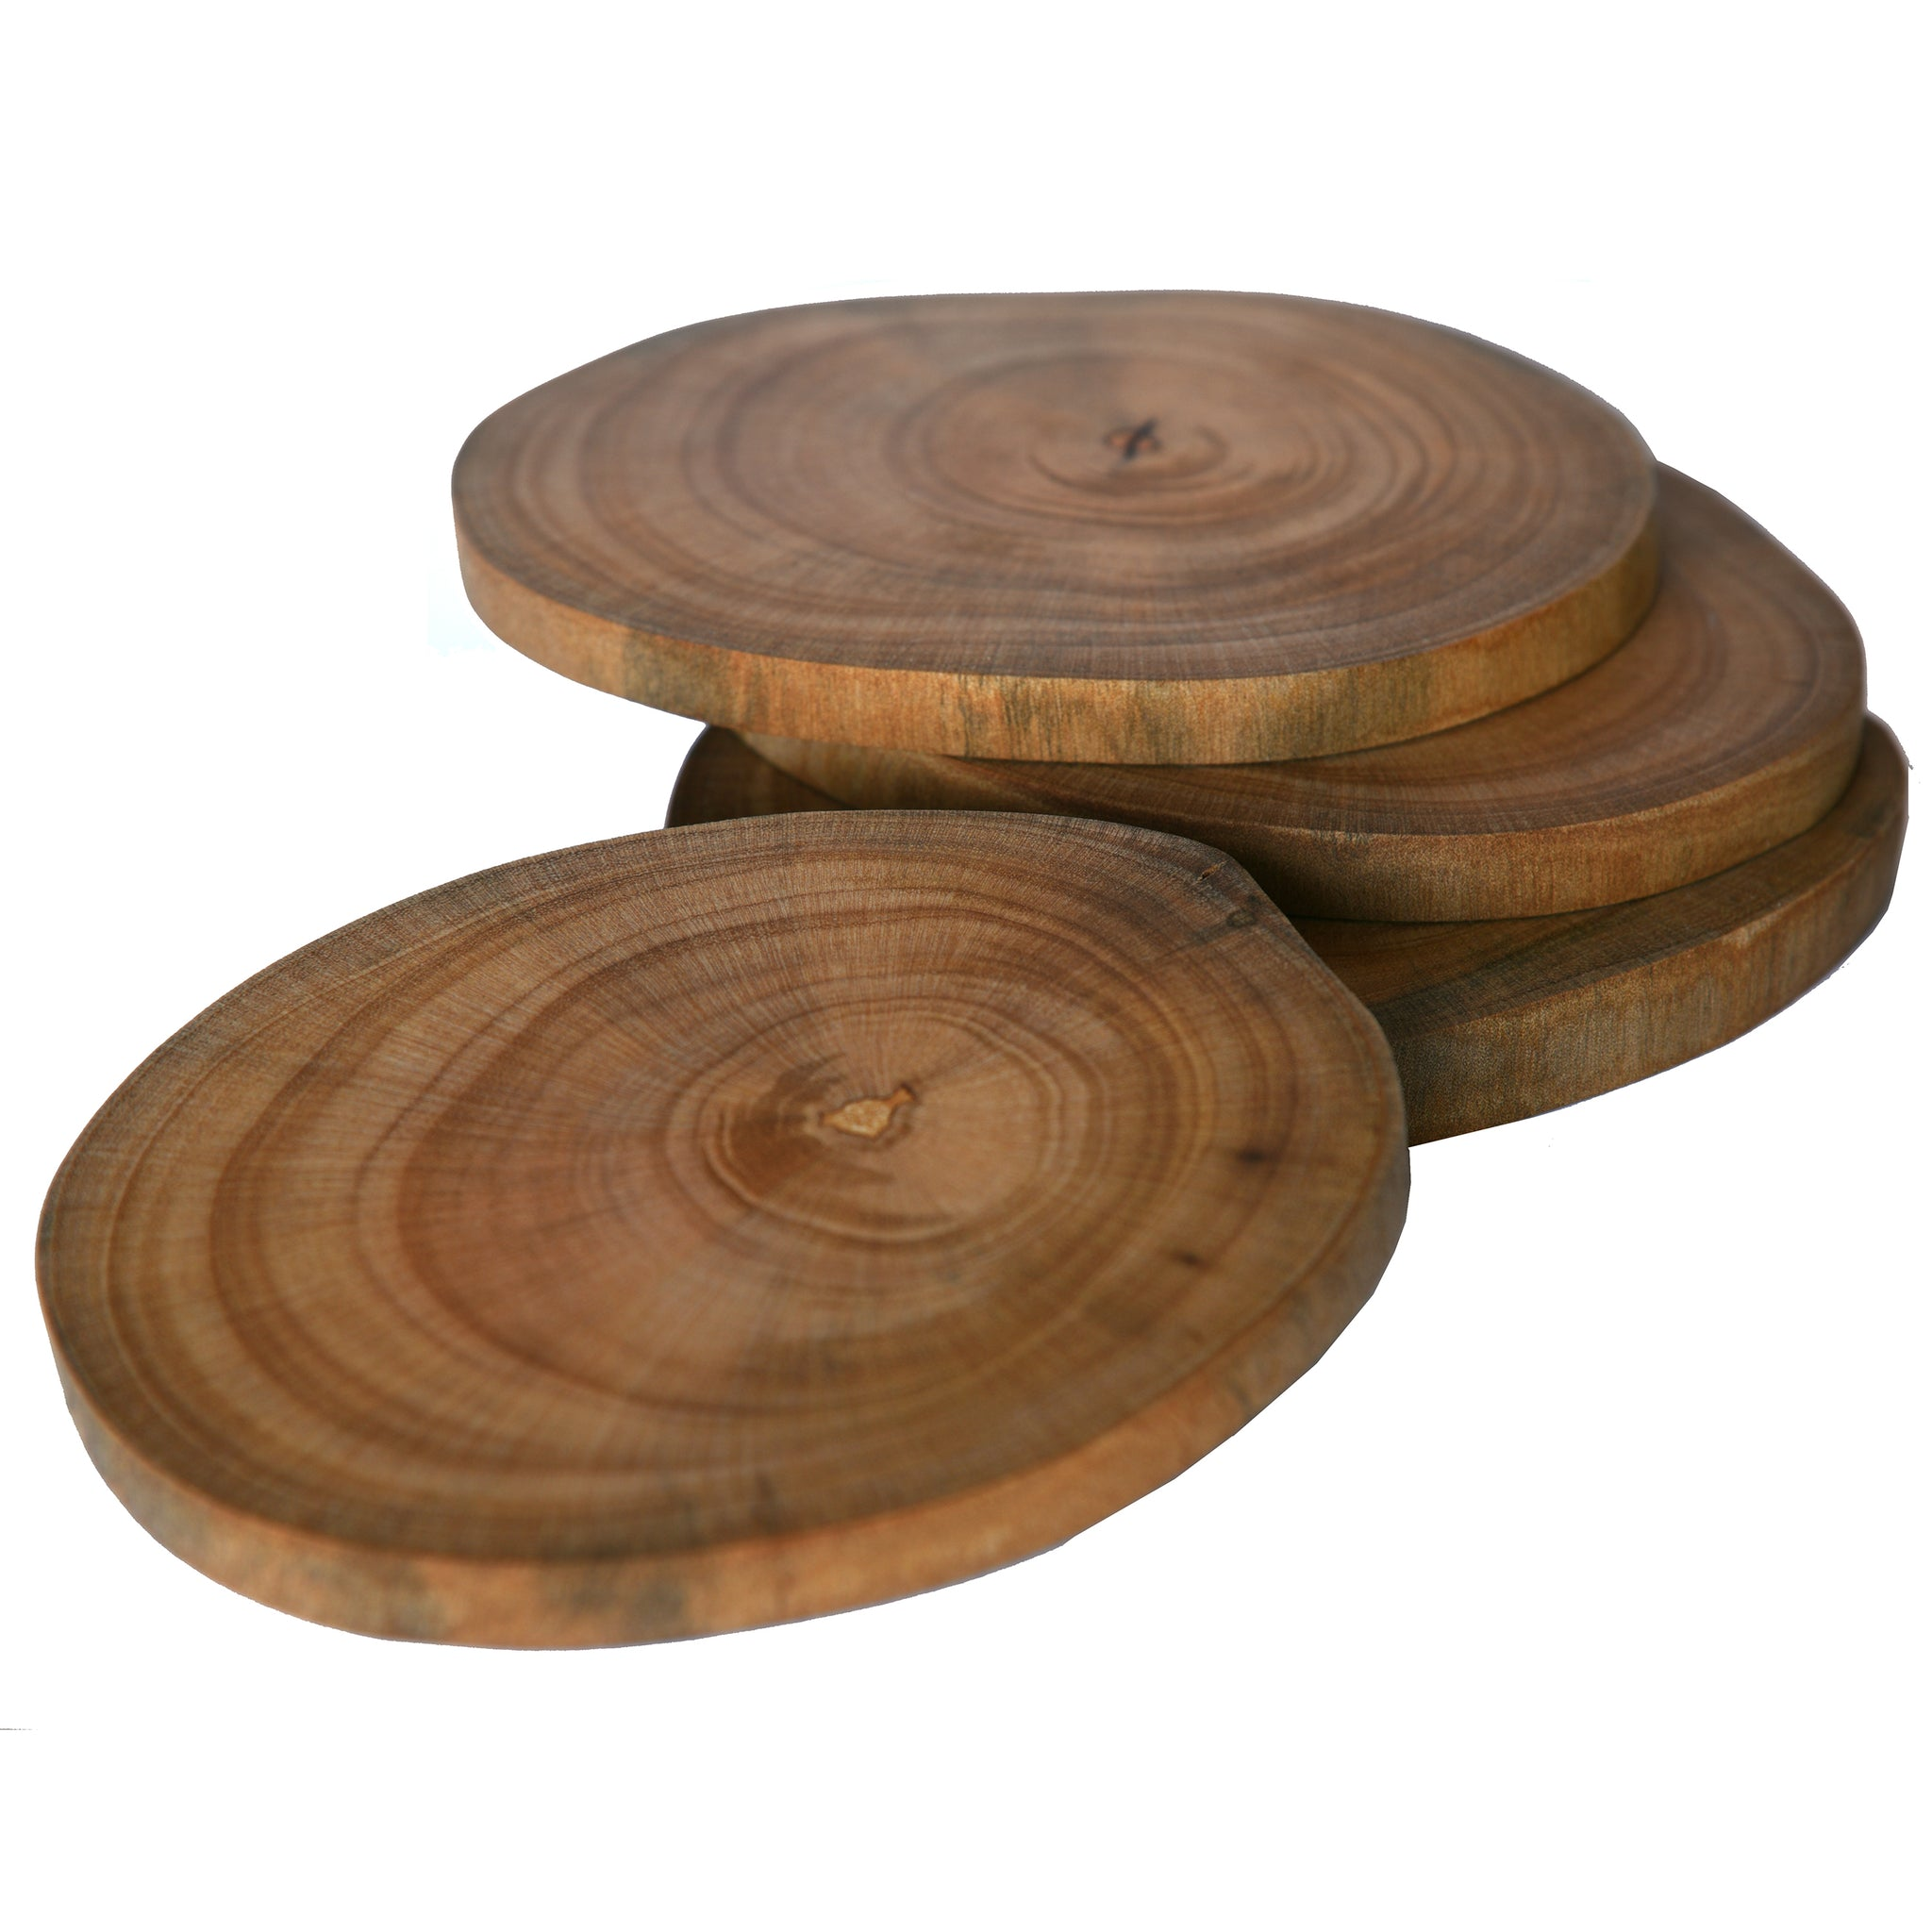 Reclaimed Wood Slice Coasters - Set Of 4